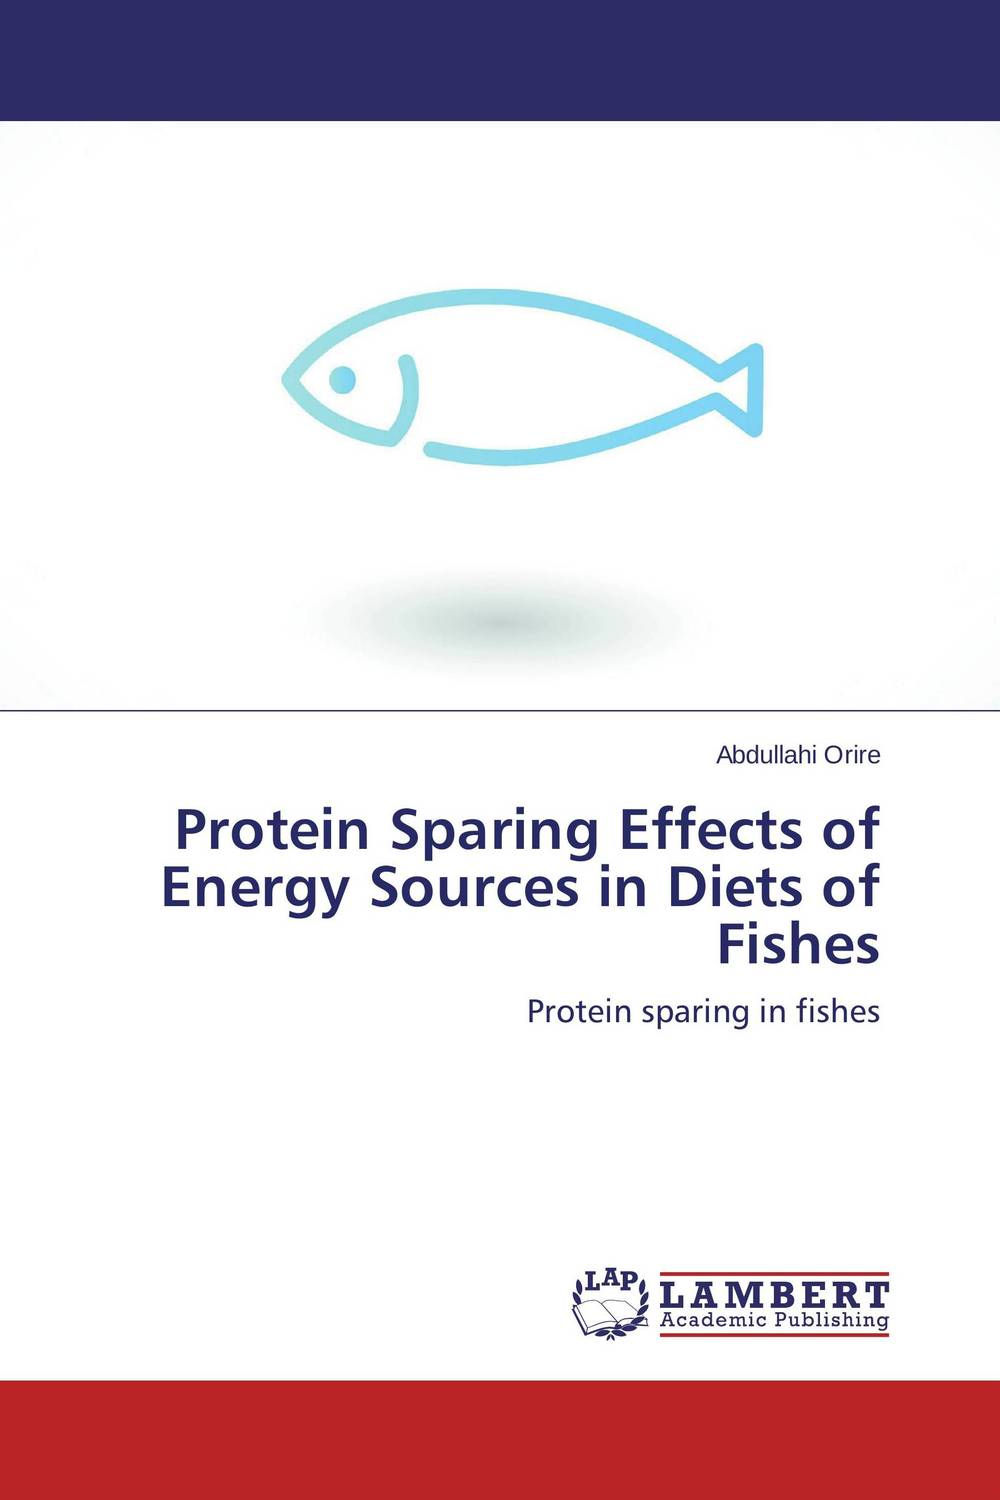 Protein Sparing Effects of Energy Sources in Diets of Fishes effect of protein energy ratio on african catfish gonadal development